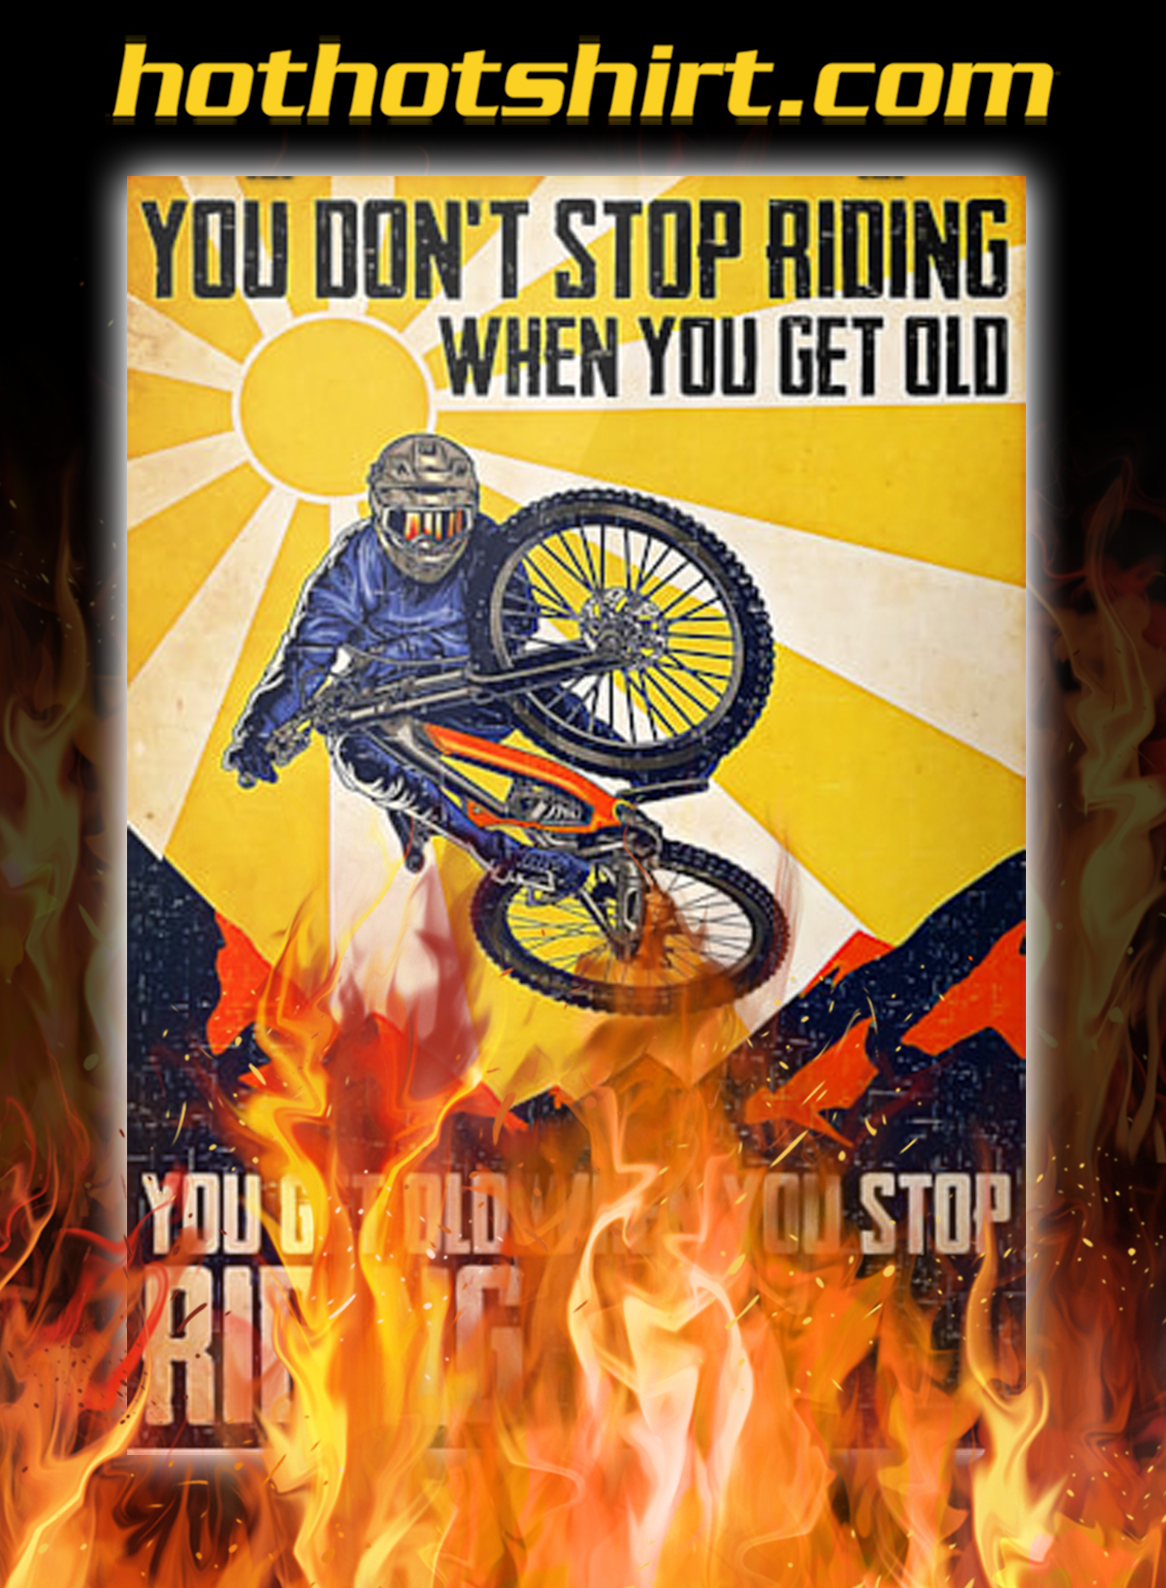 Road bike you don't stop riding when you get old poster - A4